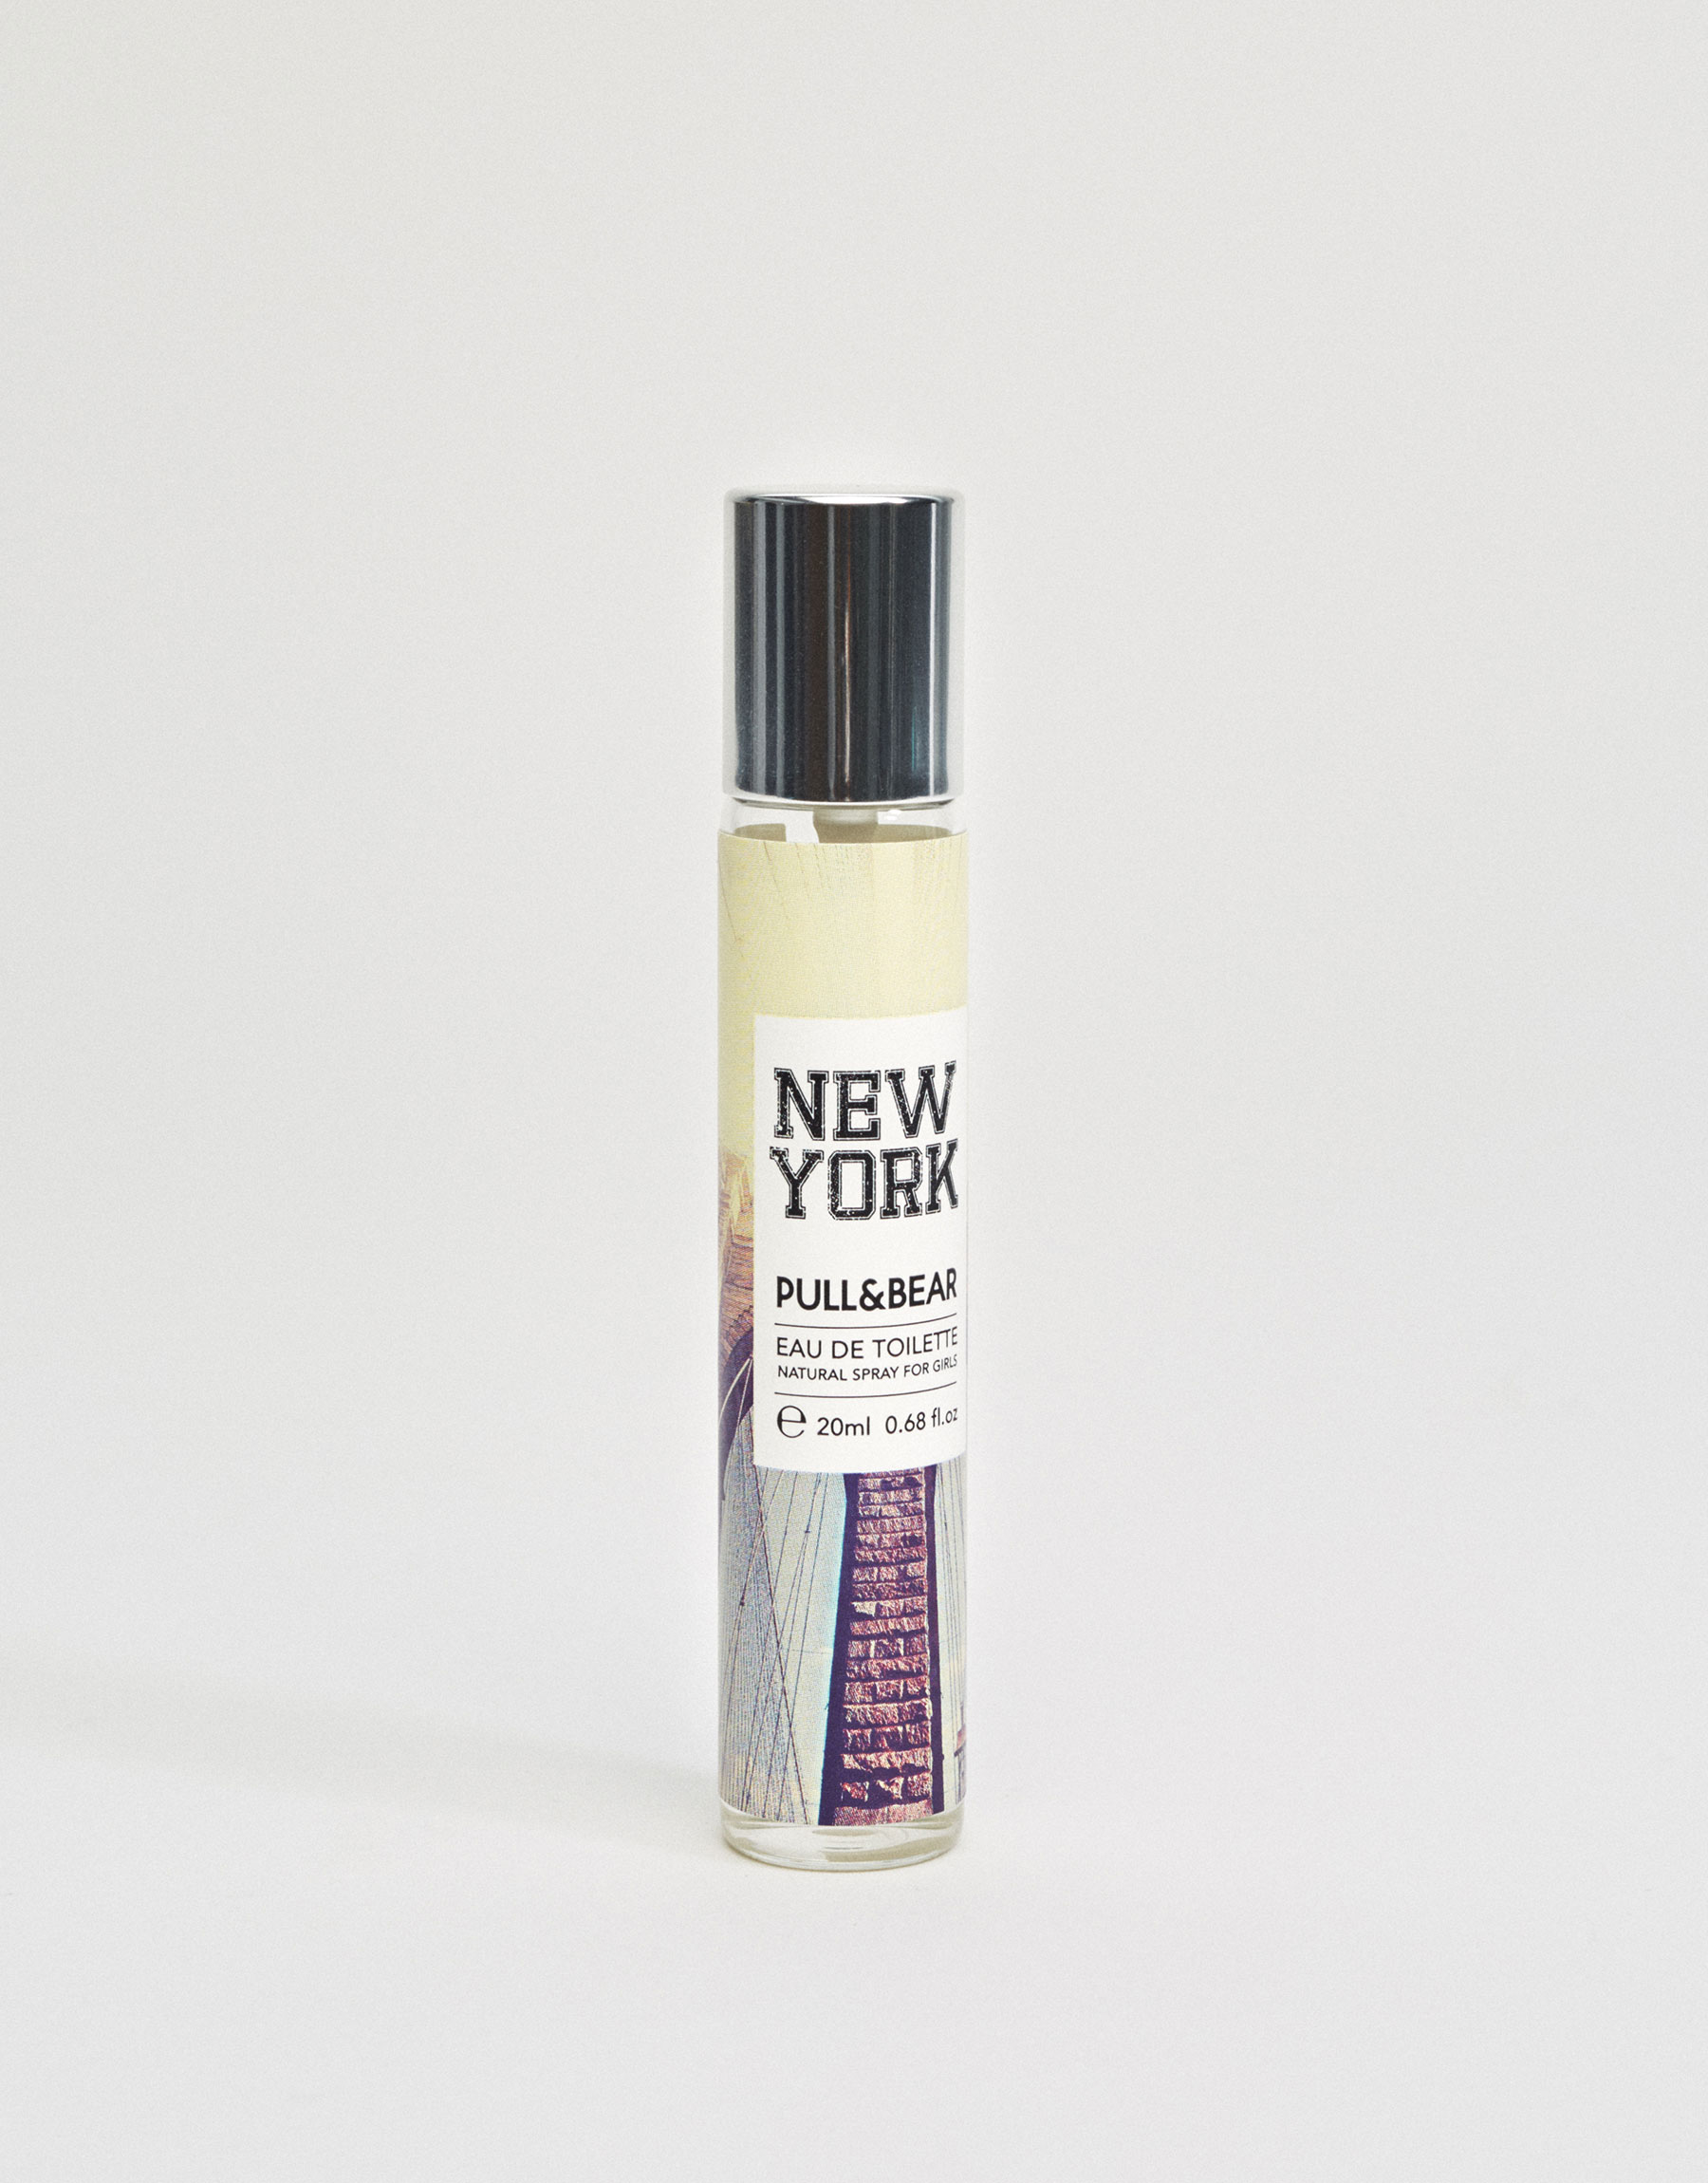 Eau de toilette pull&bear new york 20ml